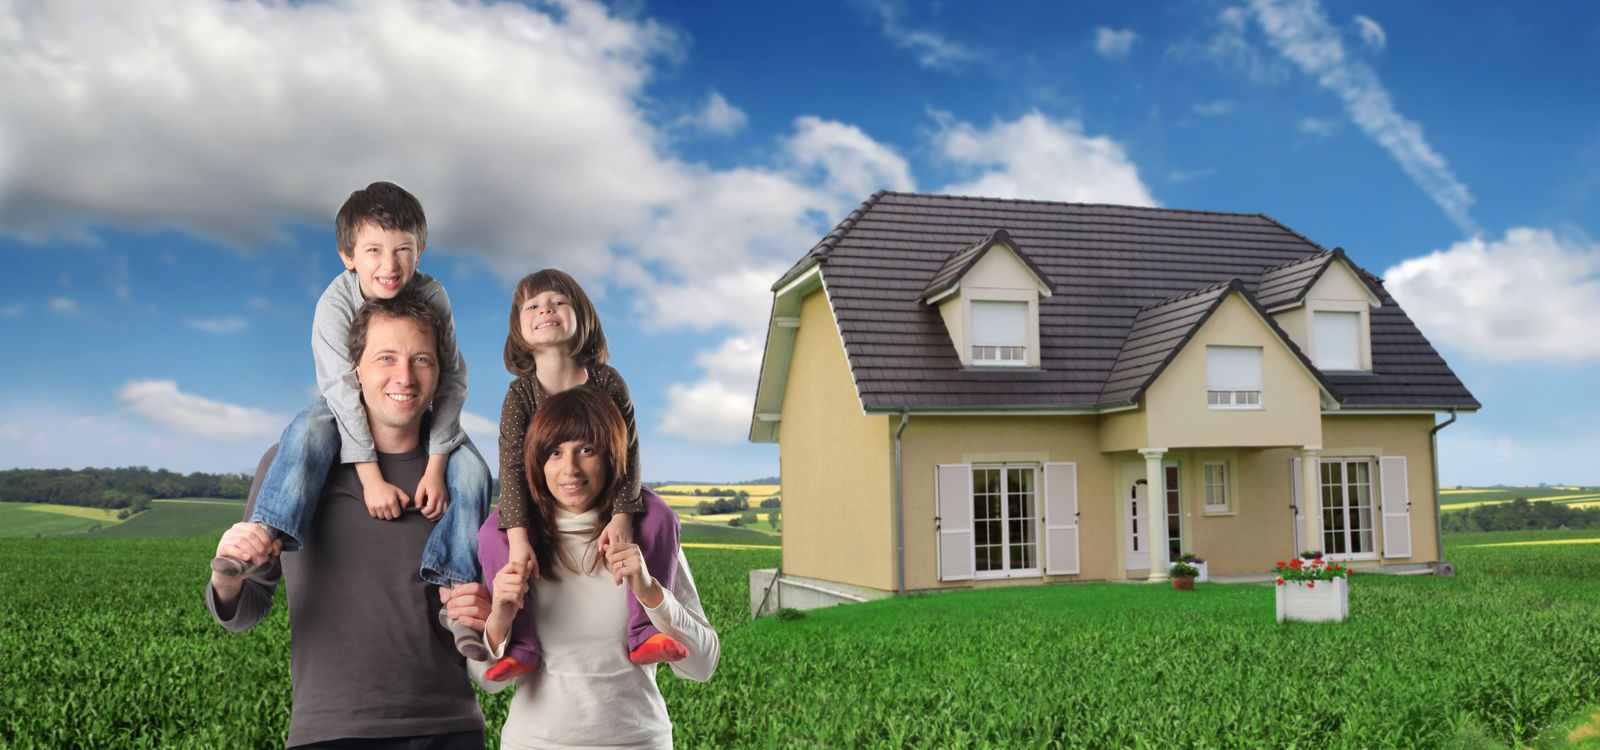 <div class='slider_caption'> <h1>Protection of your family and your home</h1> <a class='slider-readmore' href=''>Read More</a>   </div>